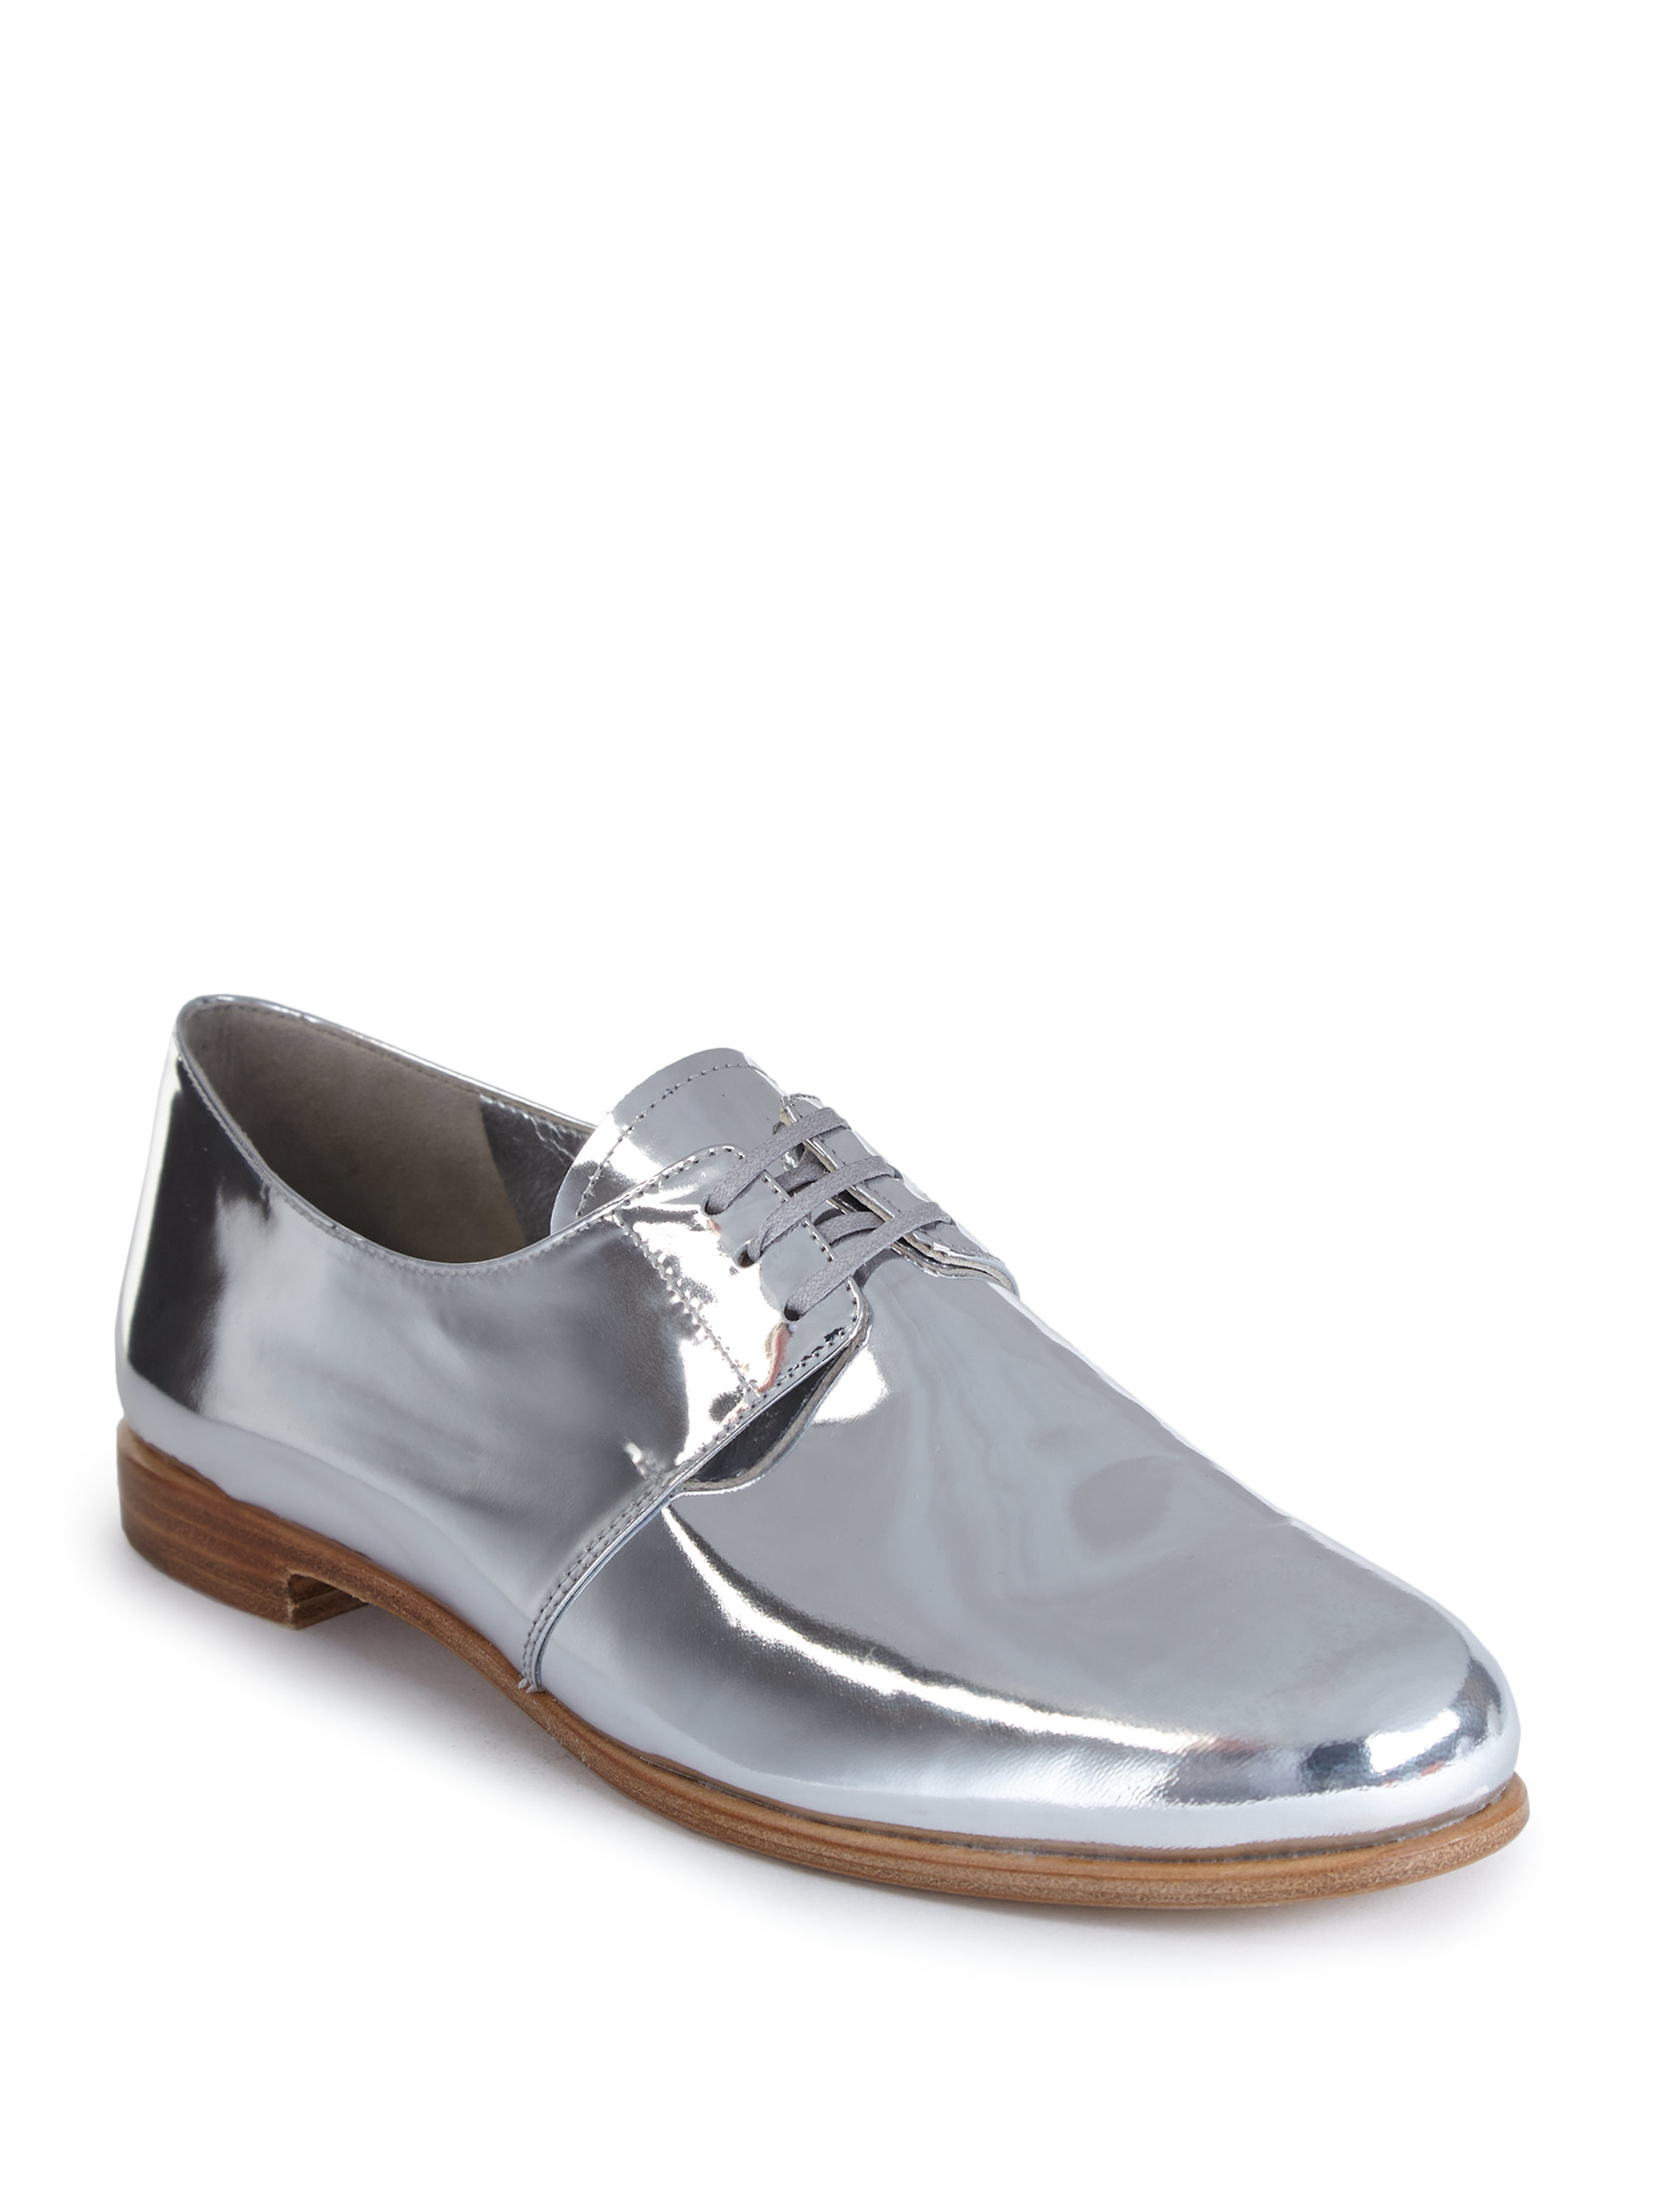 23a56b8b70 Lyst - Prada Metallic Leather Lace-up Oxfords in Metallic